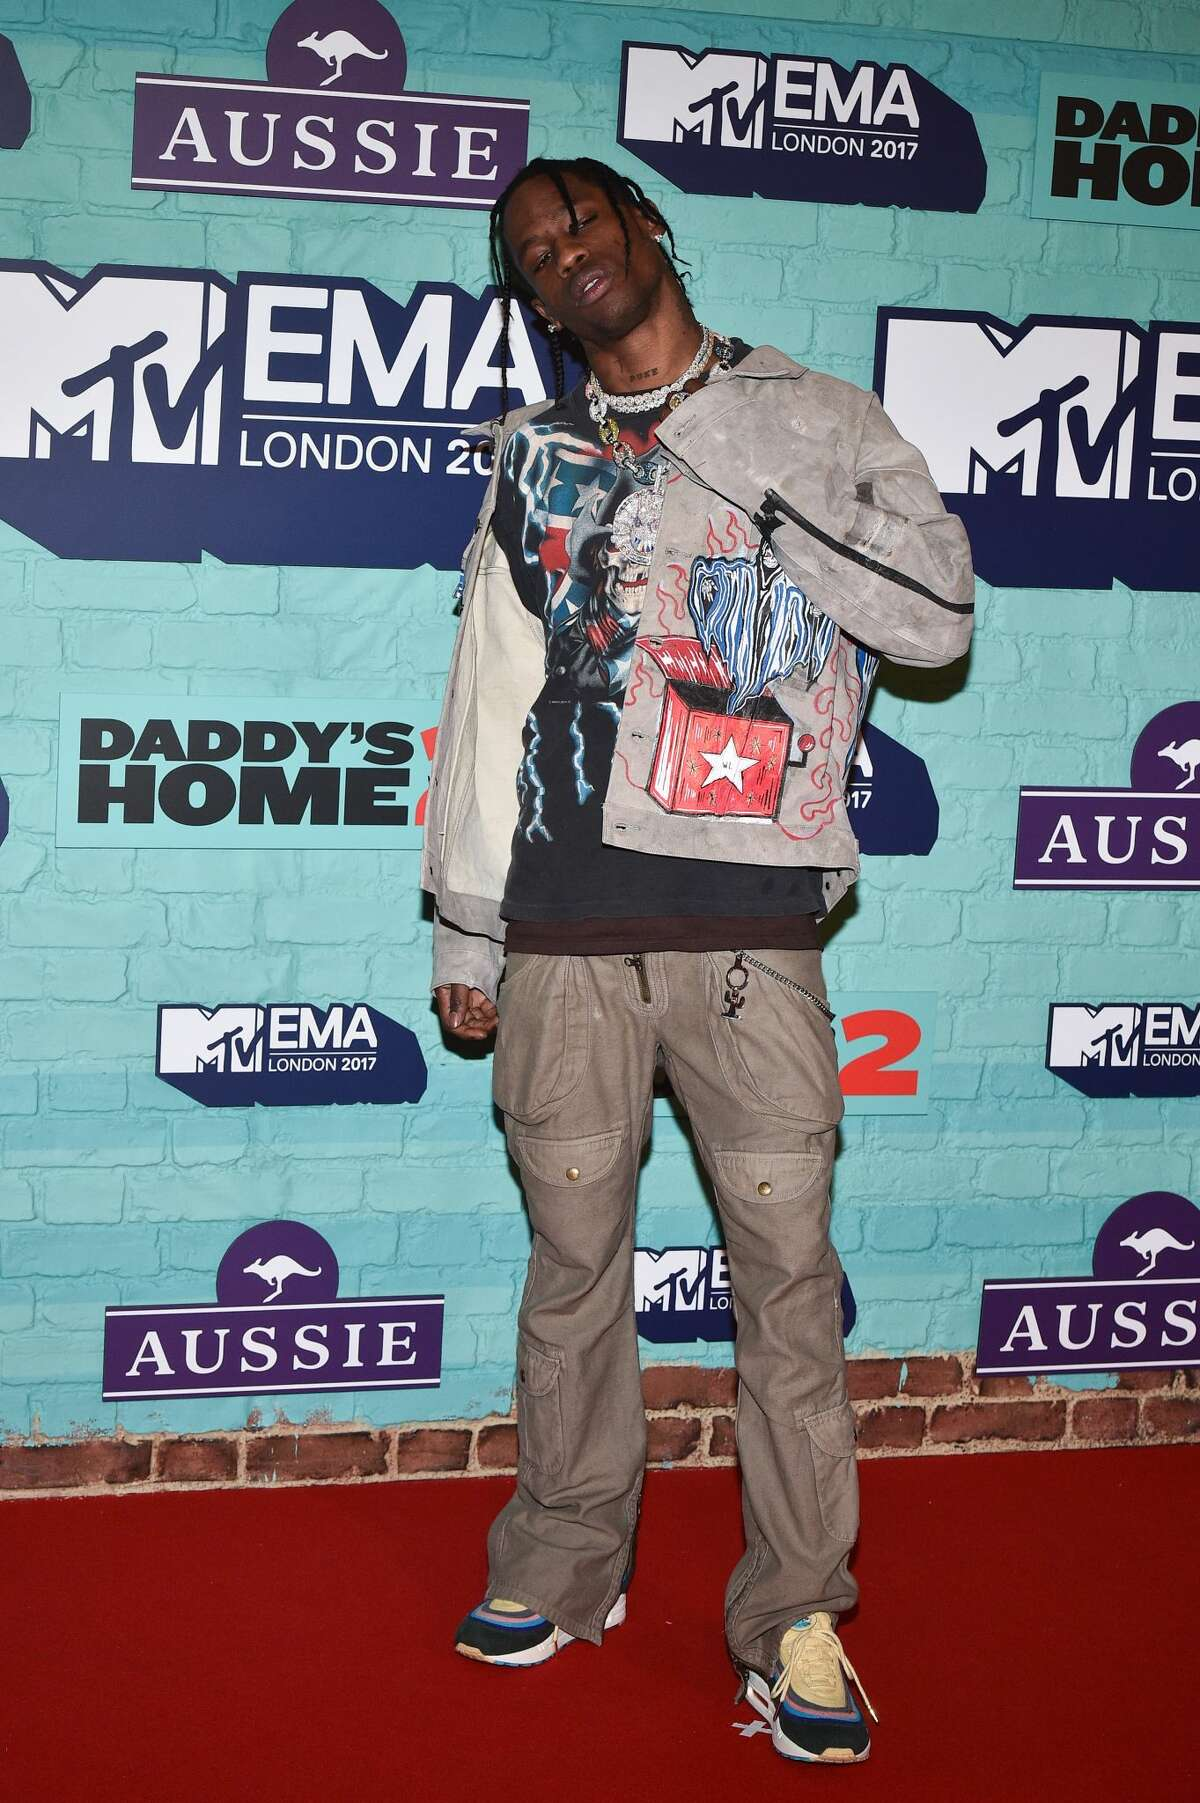 Best:The outfit is totally Travis Scott and that's all we can hope for out of this celebrity.